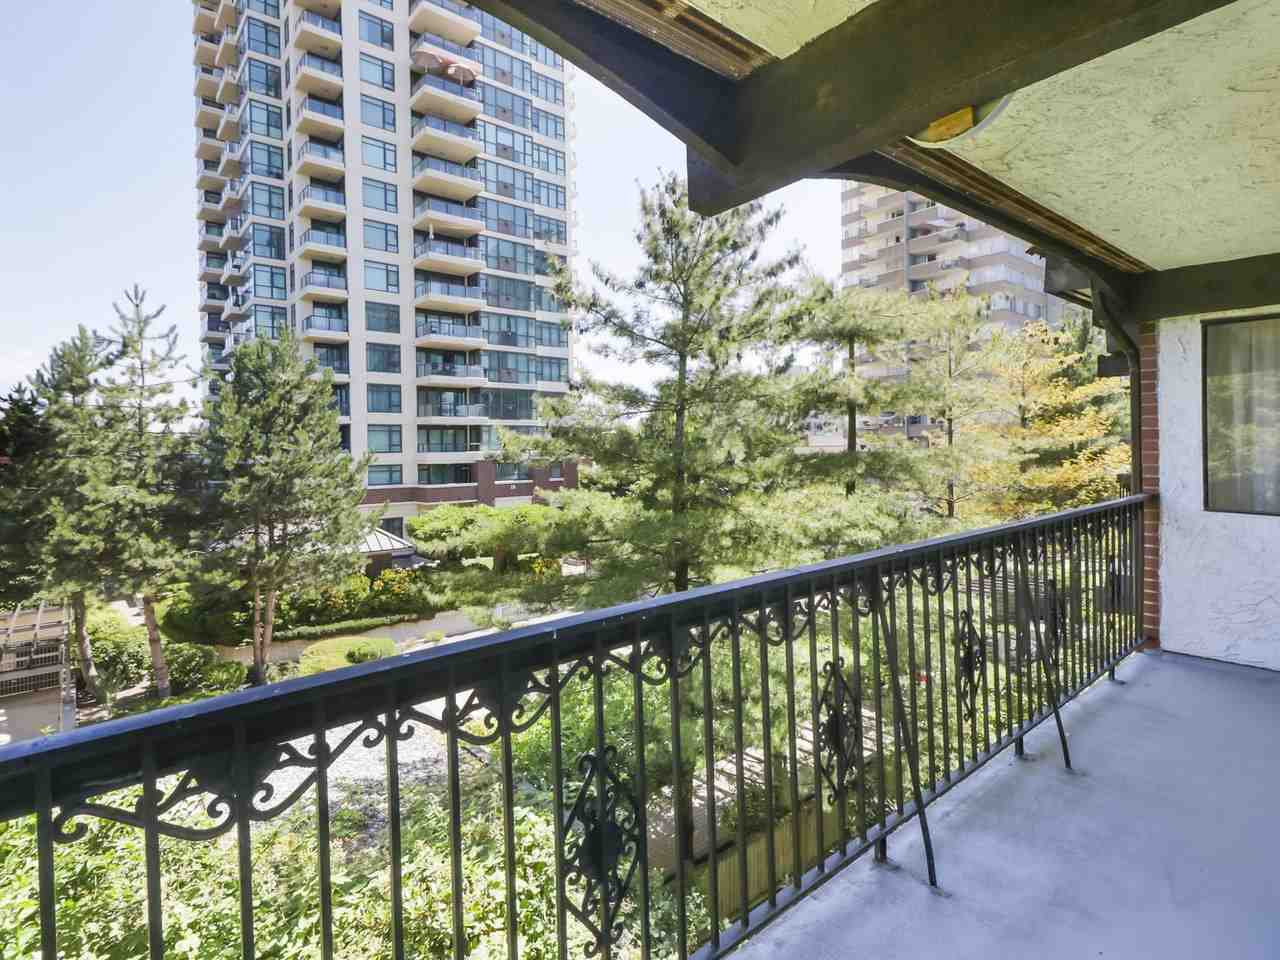 """Main Photo: 302 625 HAMILTON Street in New Westminster: Uptown NW Condo for sale in """"CASA DEL SOL"""" : MLS®# R2478937"""